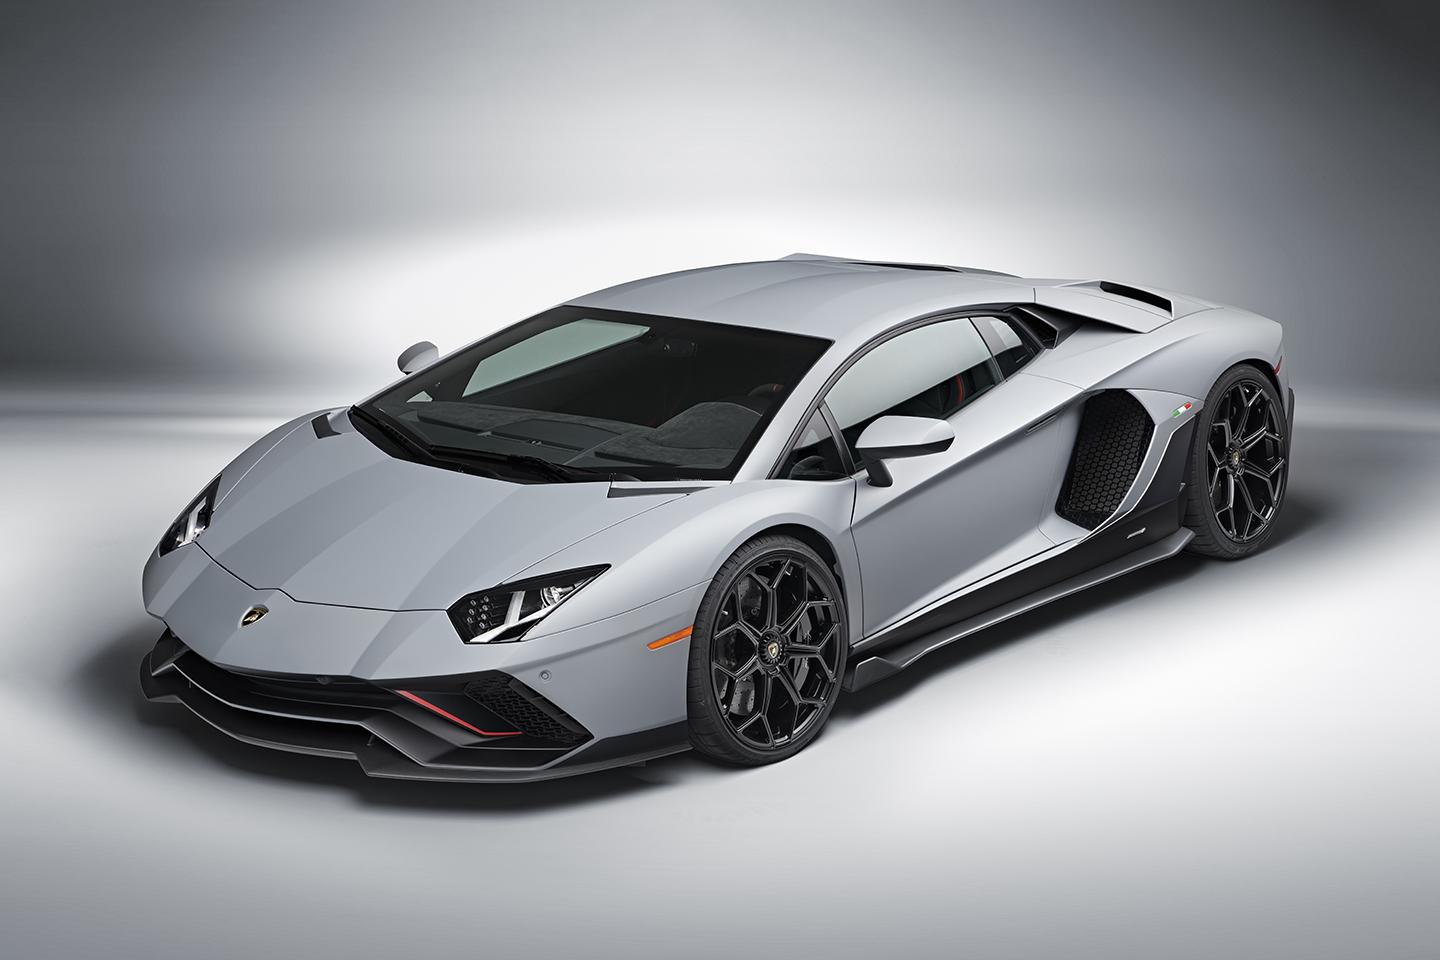 The final countdown for Lamborghini's V12 starts with the Aventador Ultimae